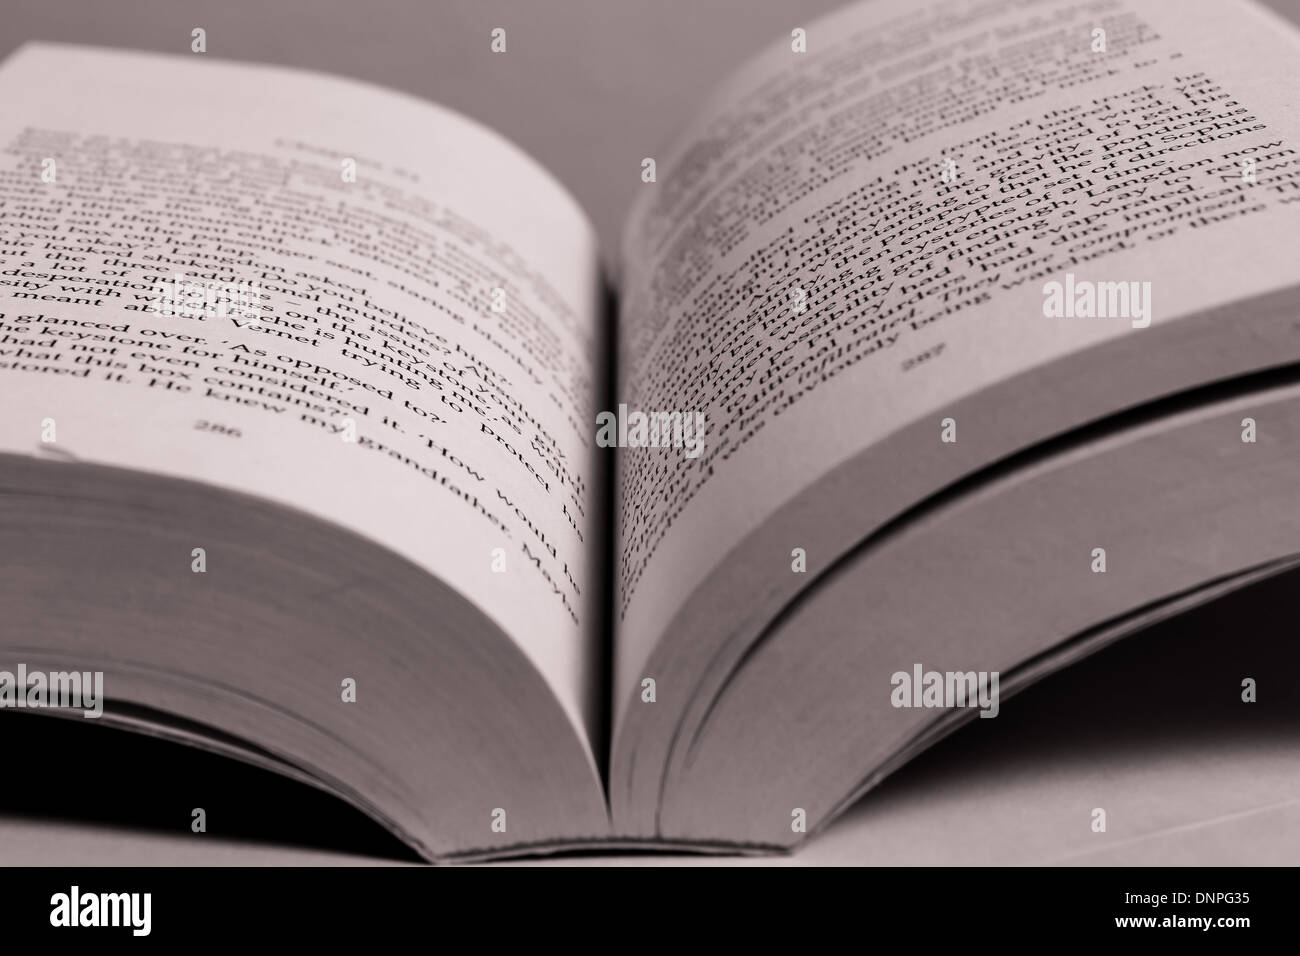 Open book black and white - Stock Image